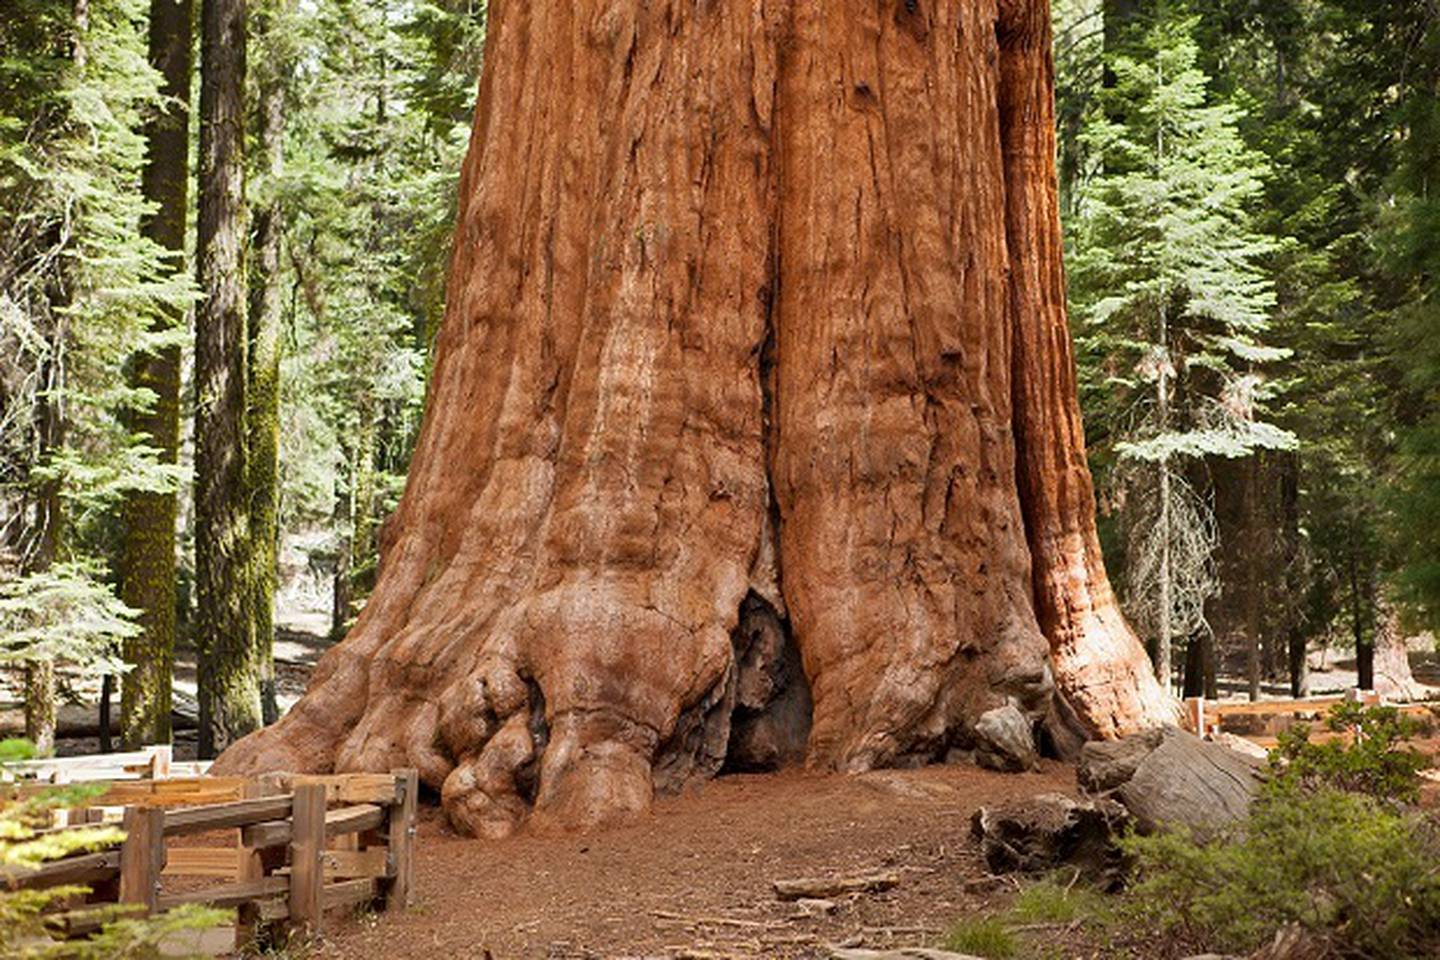 Giant Sequoia tree close-up, at Sequoia National Park. Photo / Getty Images